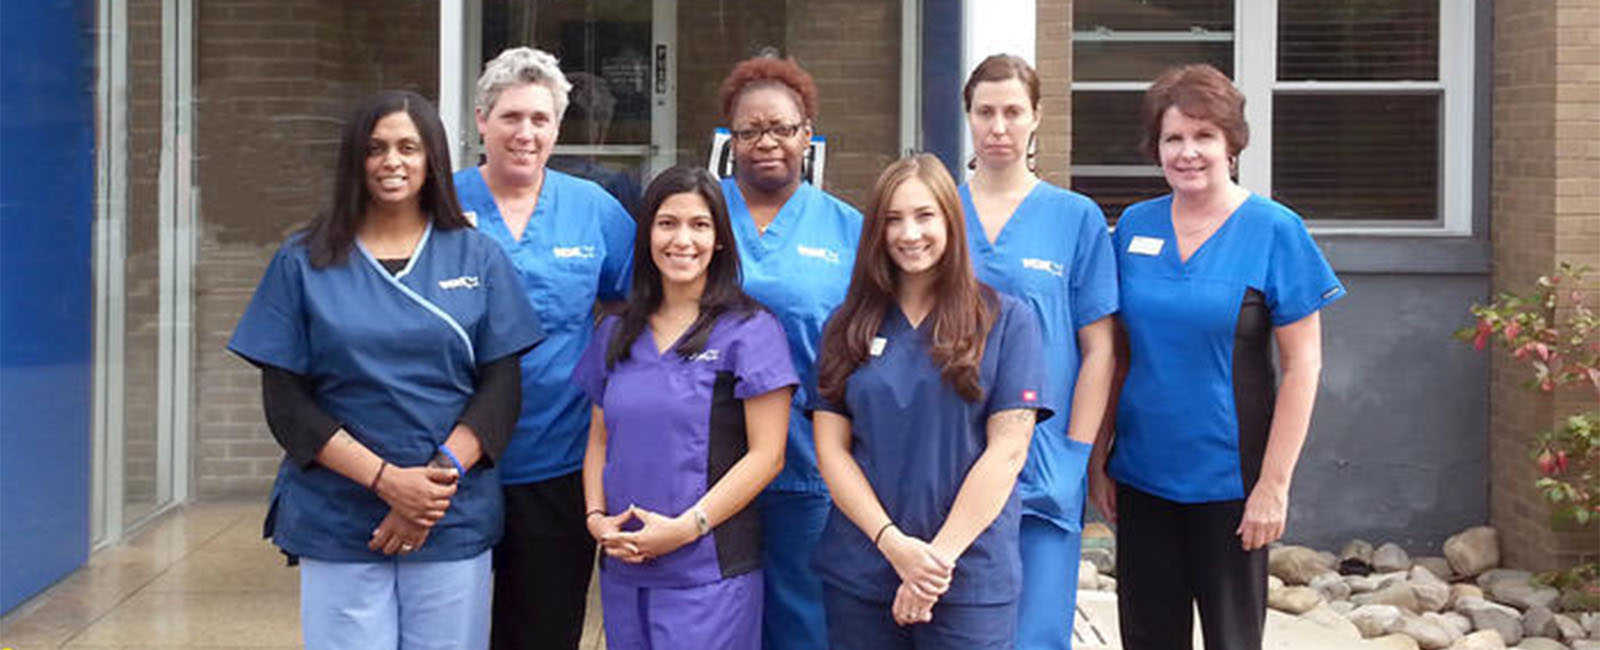 Homepage Team Picture of VCA Foster Animal Hospital